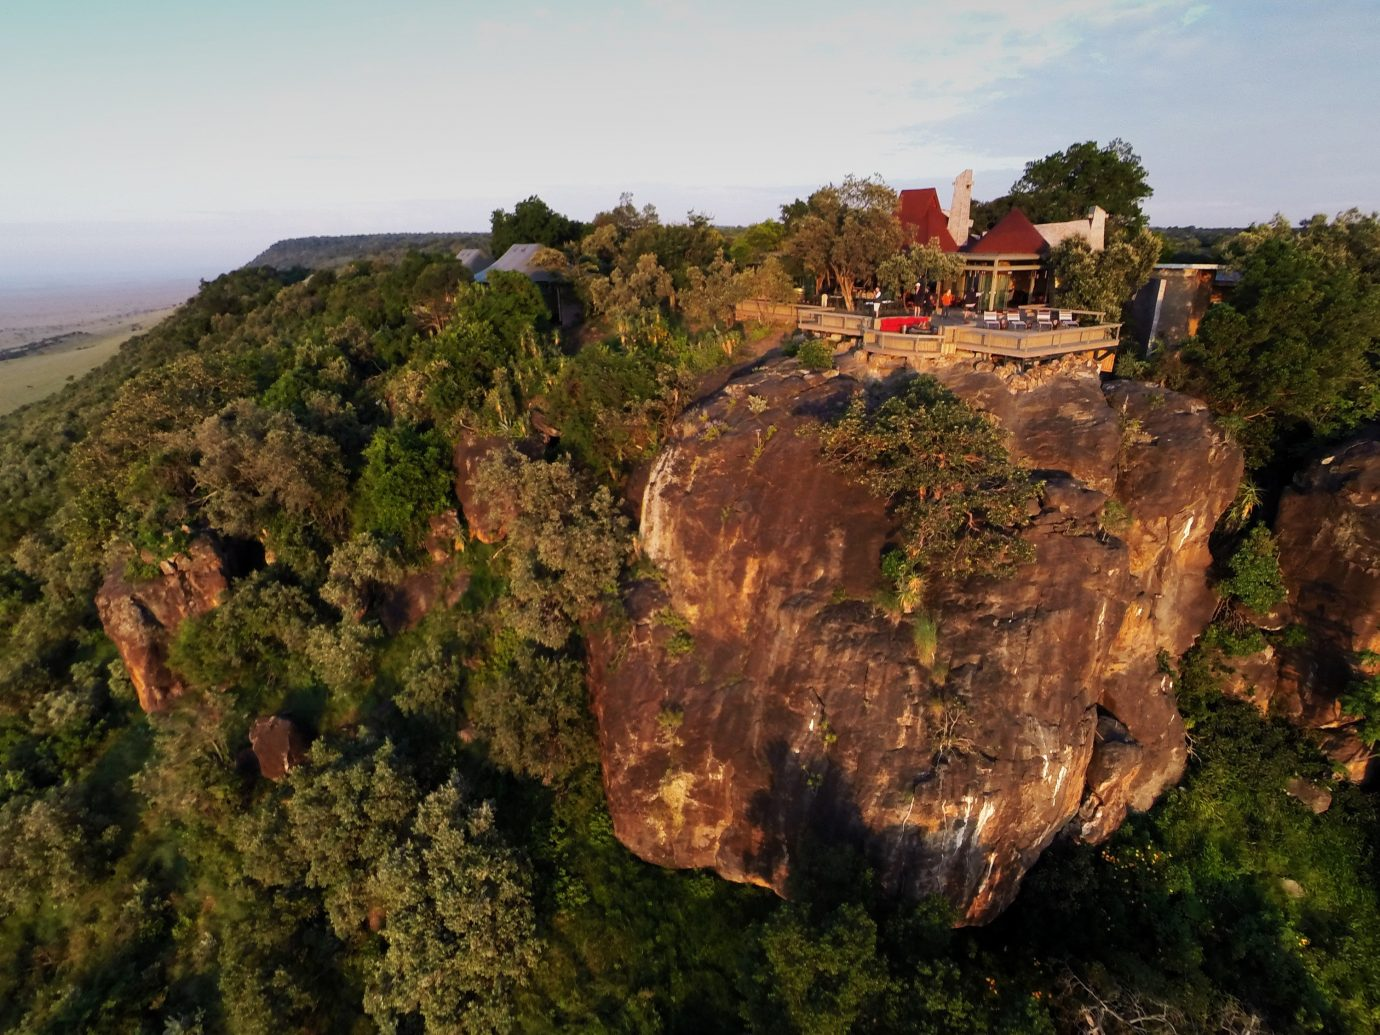 Hotels outdoor sky Nature tree cliff rock geological phenomenon Coast terrain aerial photography hill geology canyon hillside